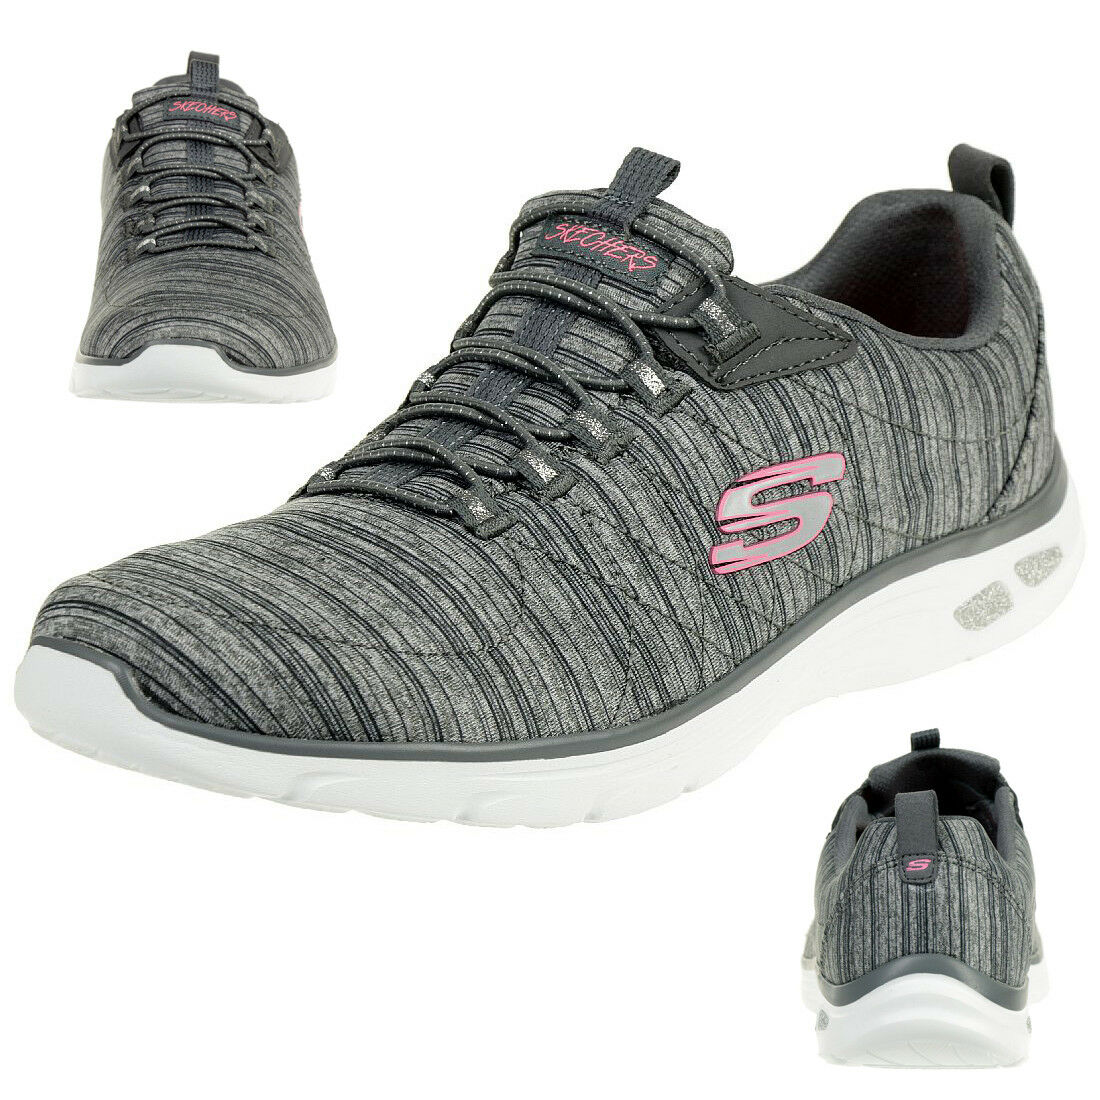 Skechers Relaxed Fit Imperio D'Lux D'Lux D'Lux Zapatillas Deportivas de Mujer Air Cooled  marca